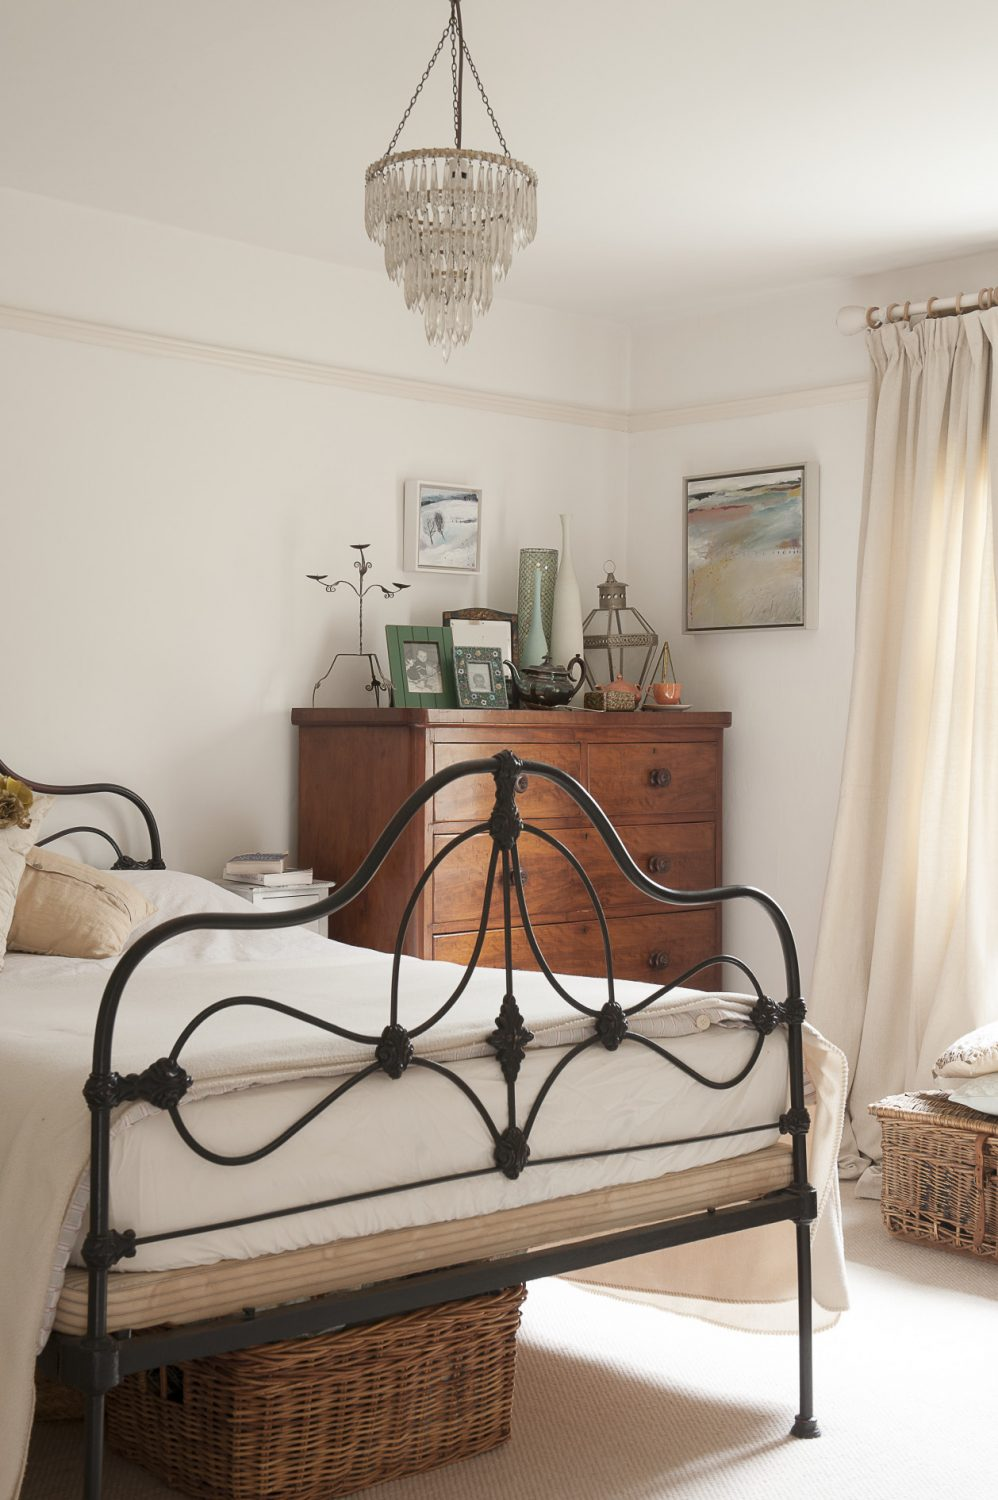 Upstairs the star of the show in the crisp, white master bedroom is a lovely period art nouveau wrought-iron bed